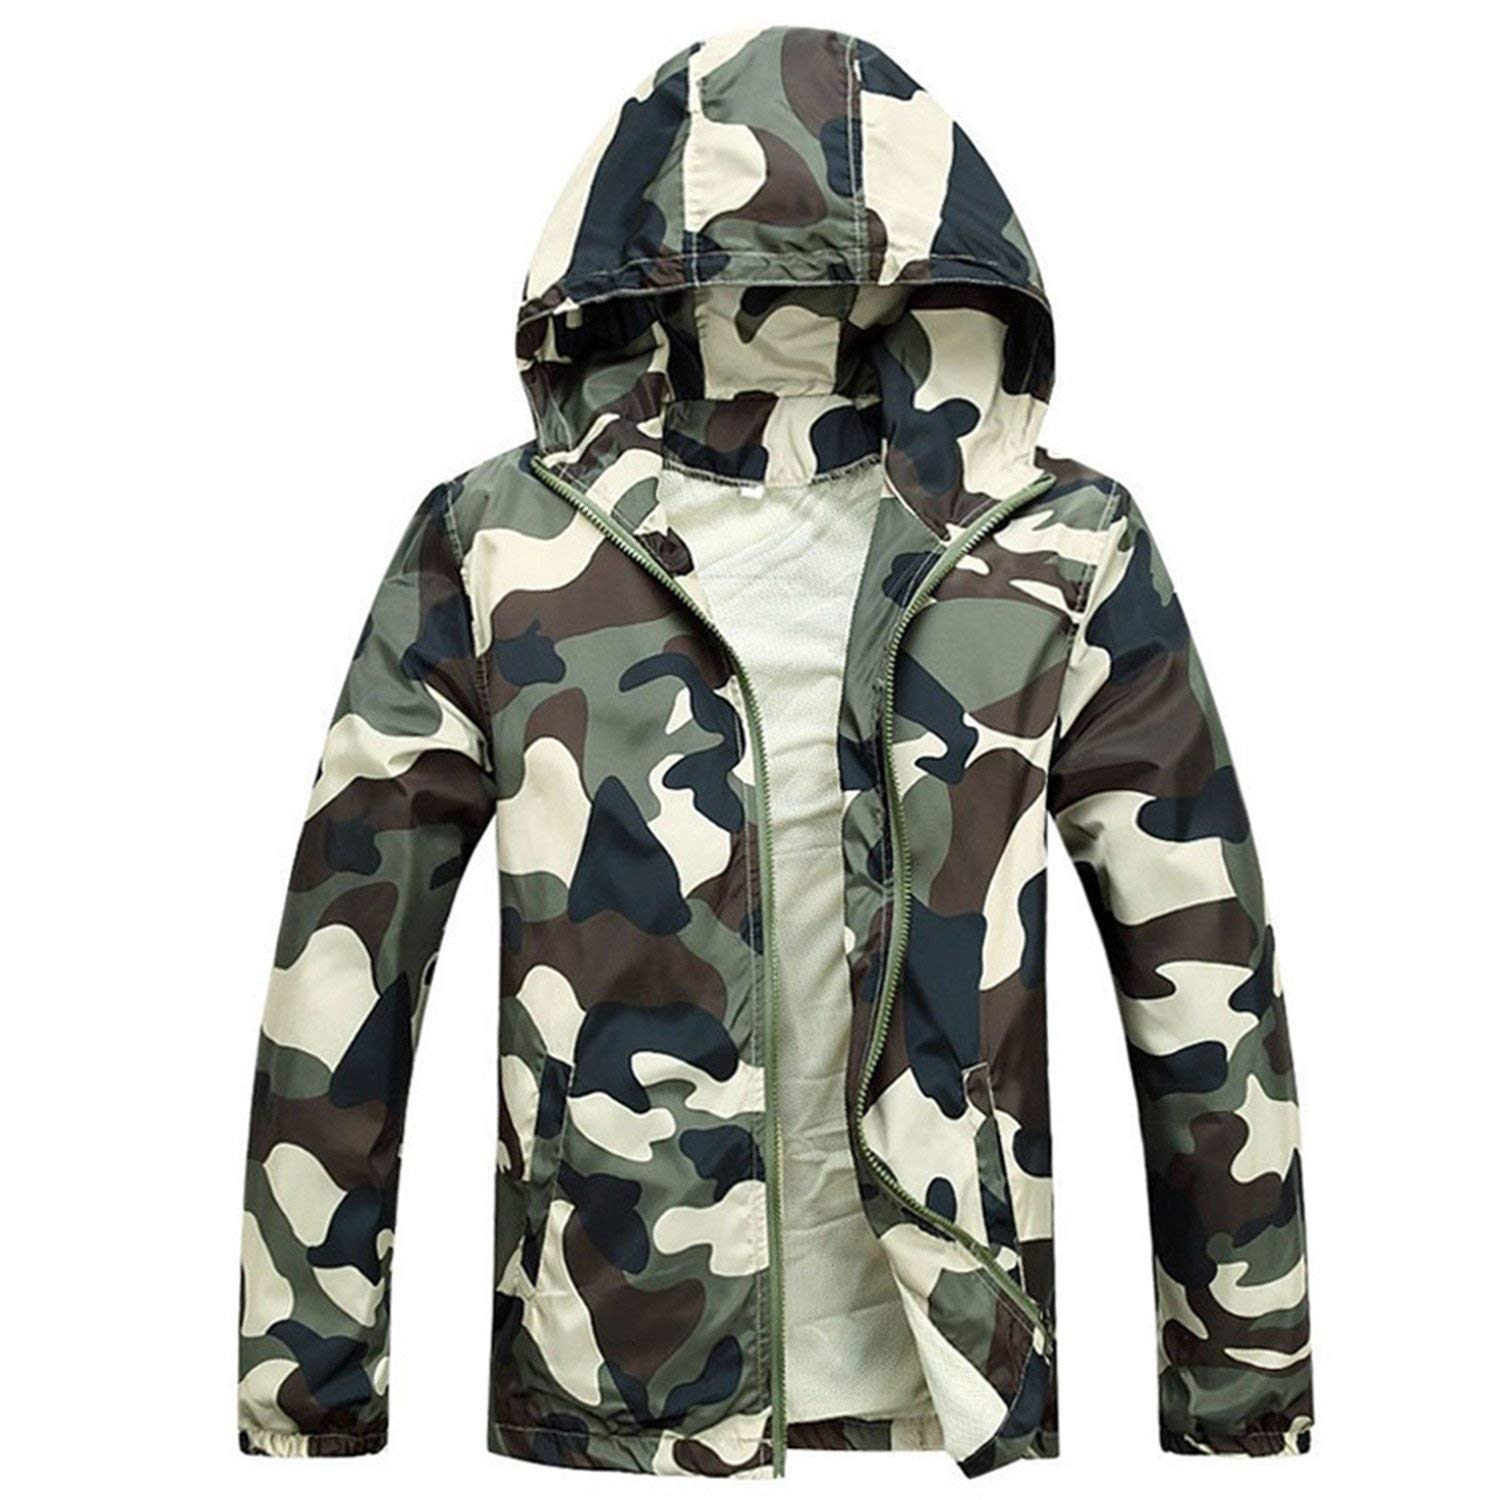 Roxacam Faomgo 2017 Hot Sale Mens Outwear Thin Jackets Coats Fashion Camouflage Jacket Summer Male Hooded